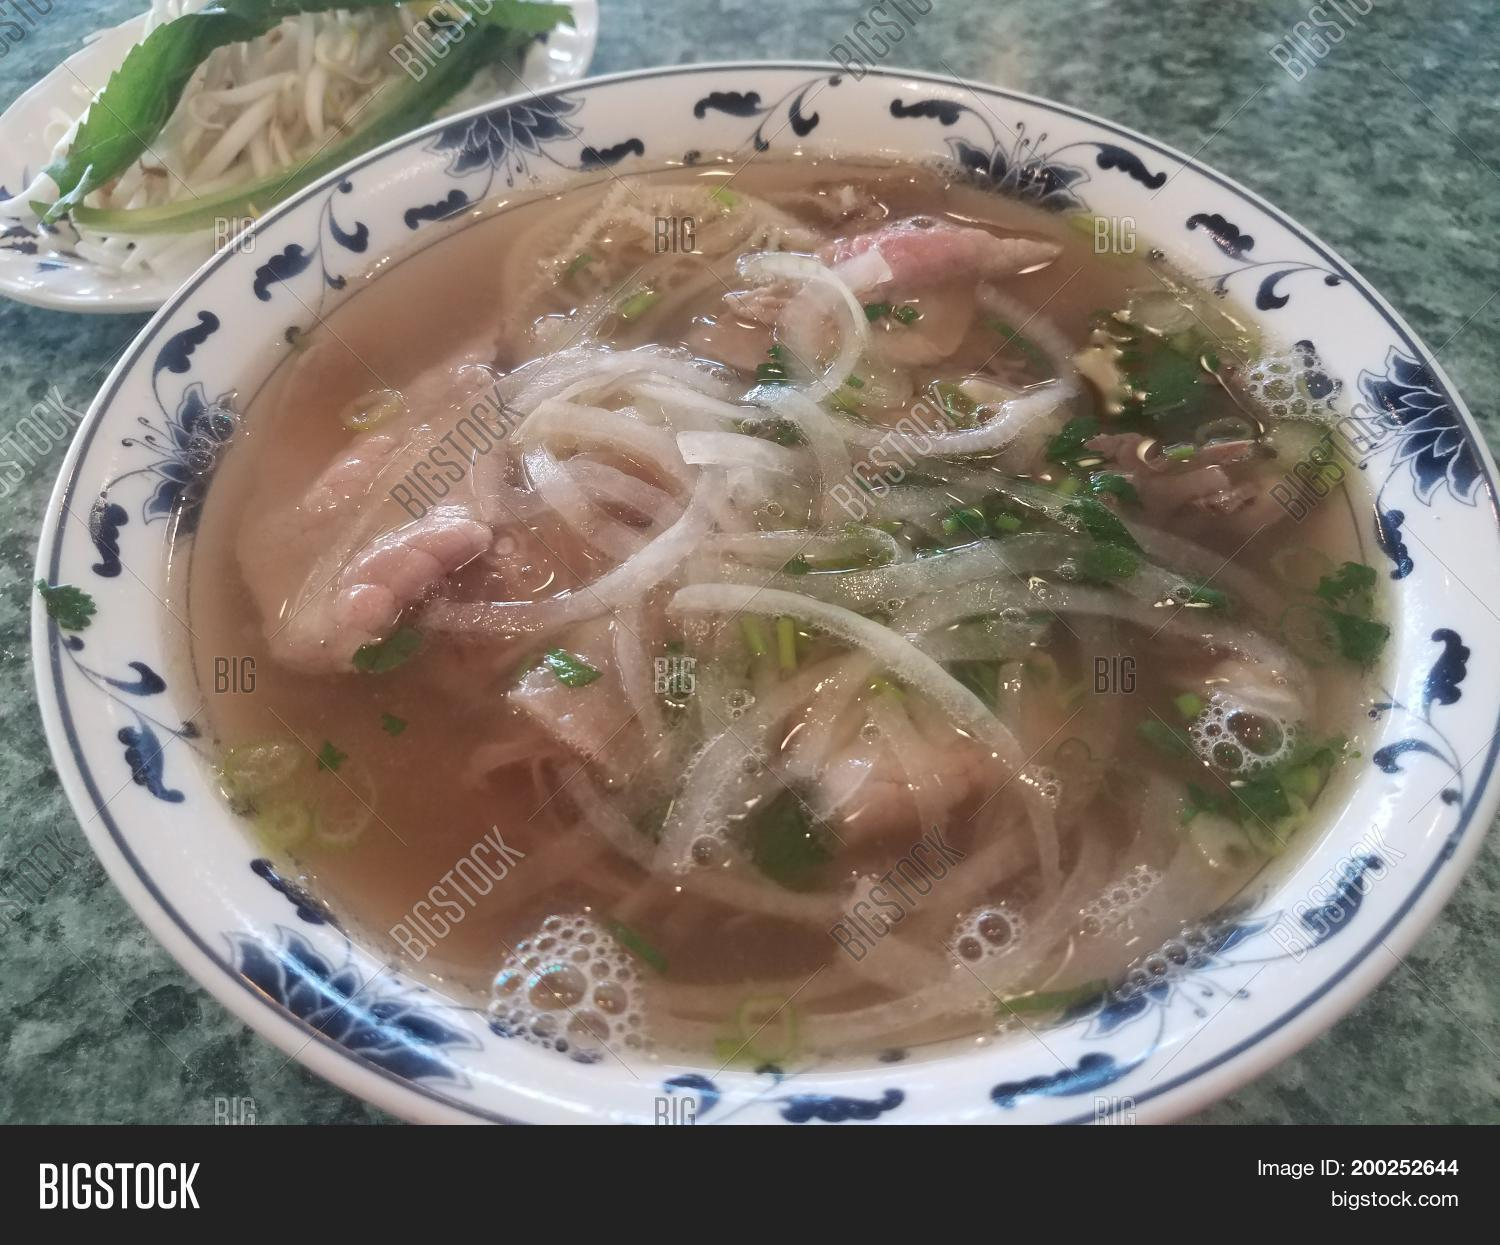 Large Bowl Vietnamese Image & Photo (Free Trial) | Bigstock